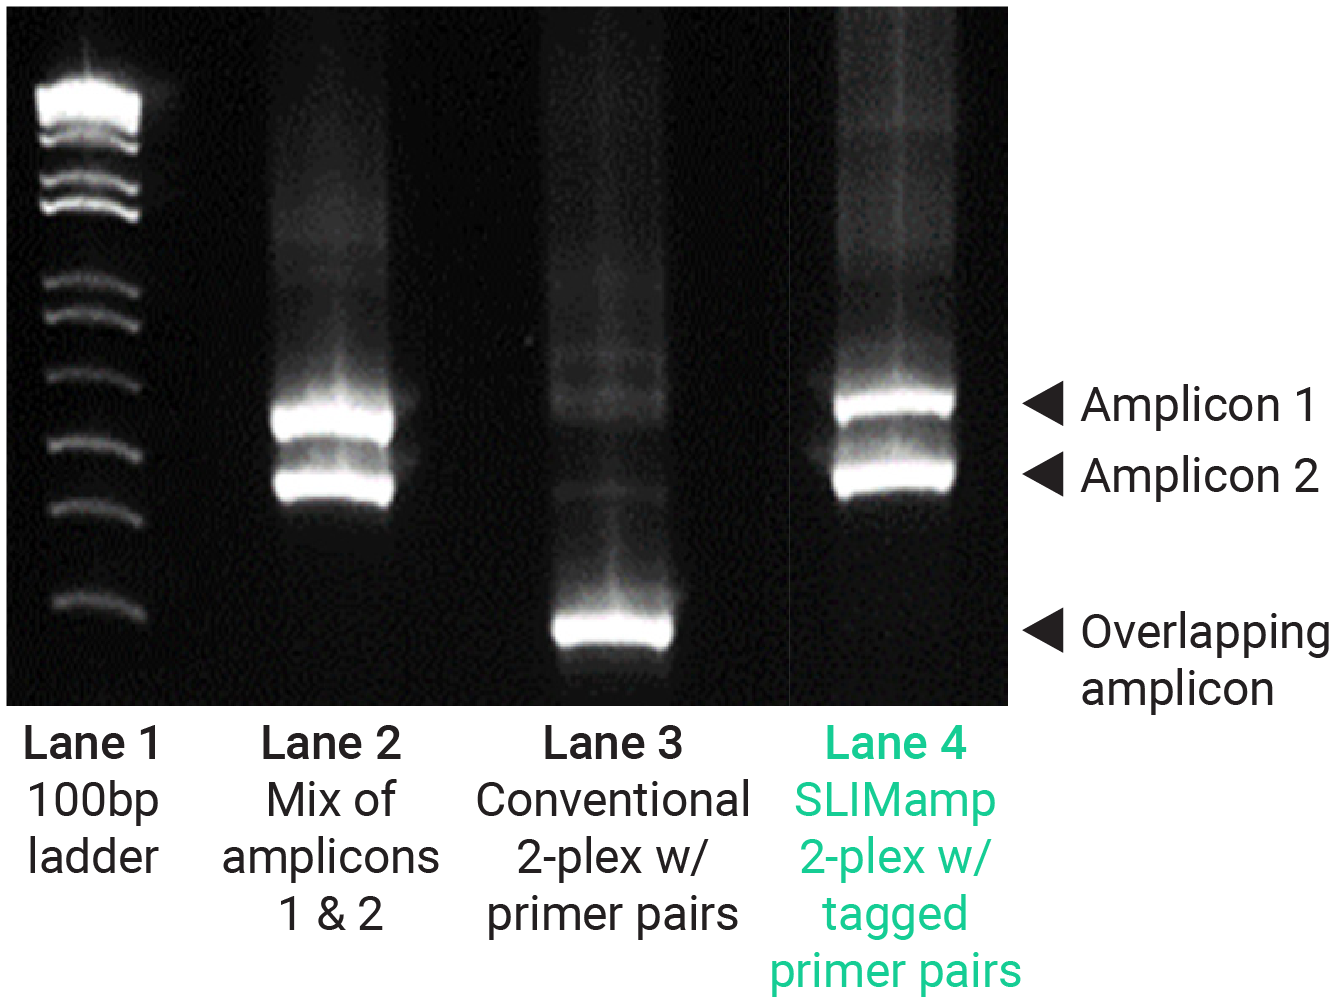 Slimamp target amplification by NGS